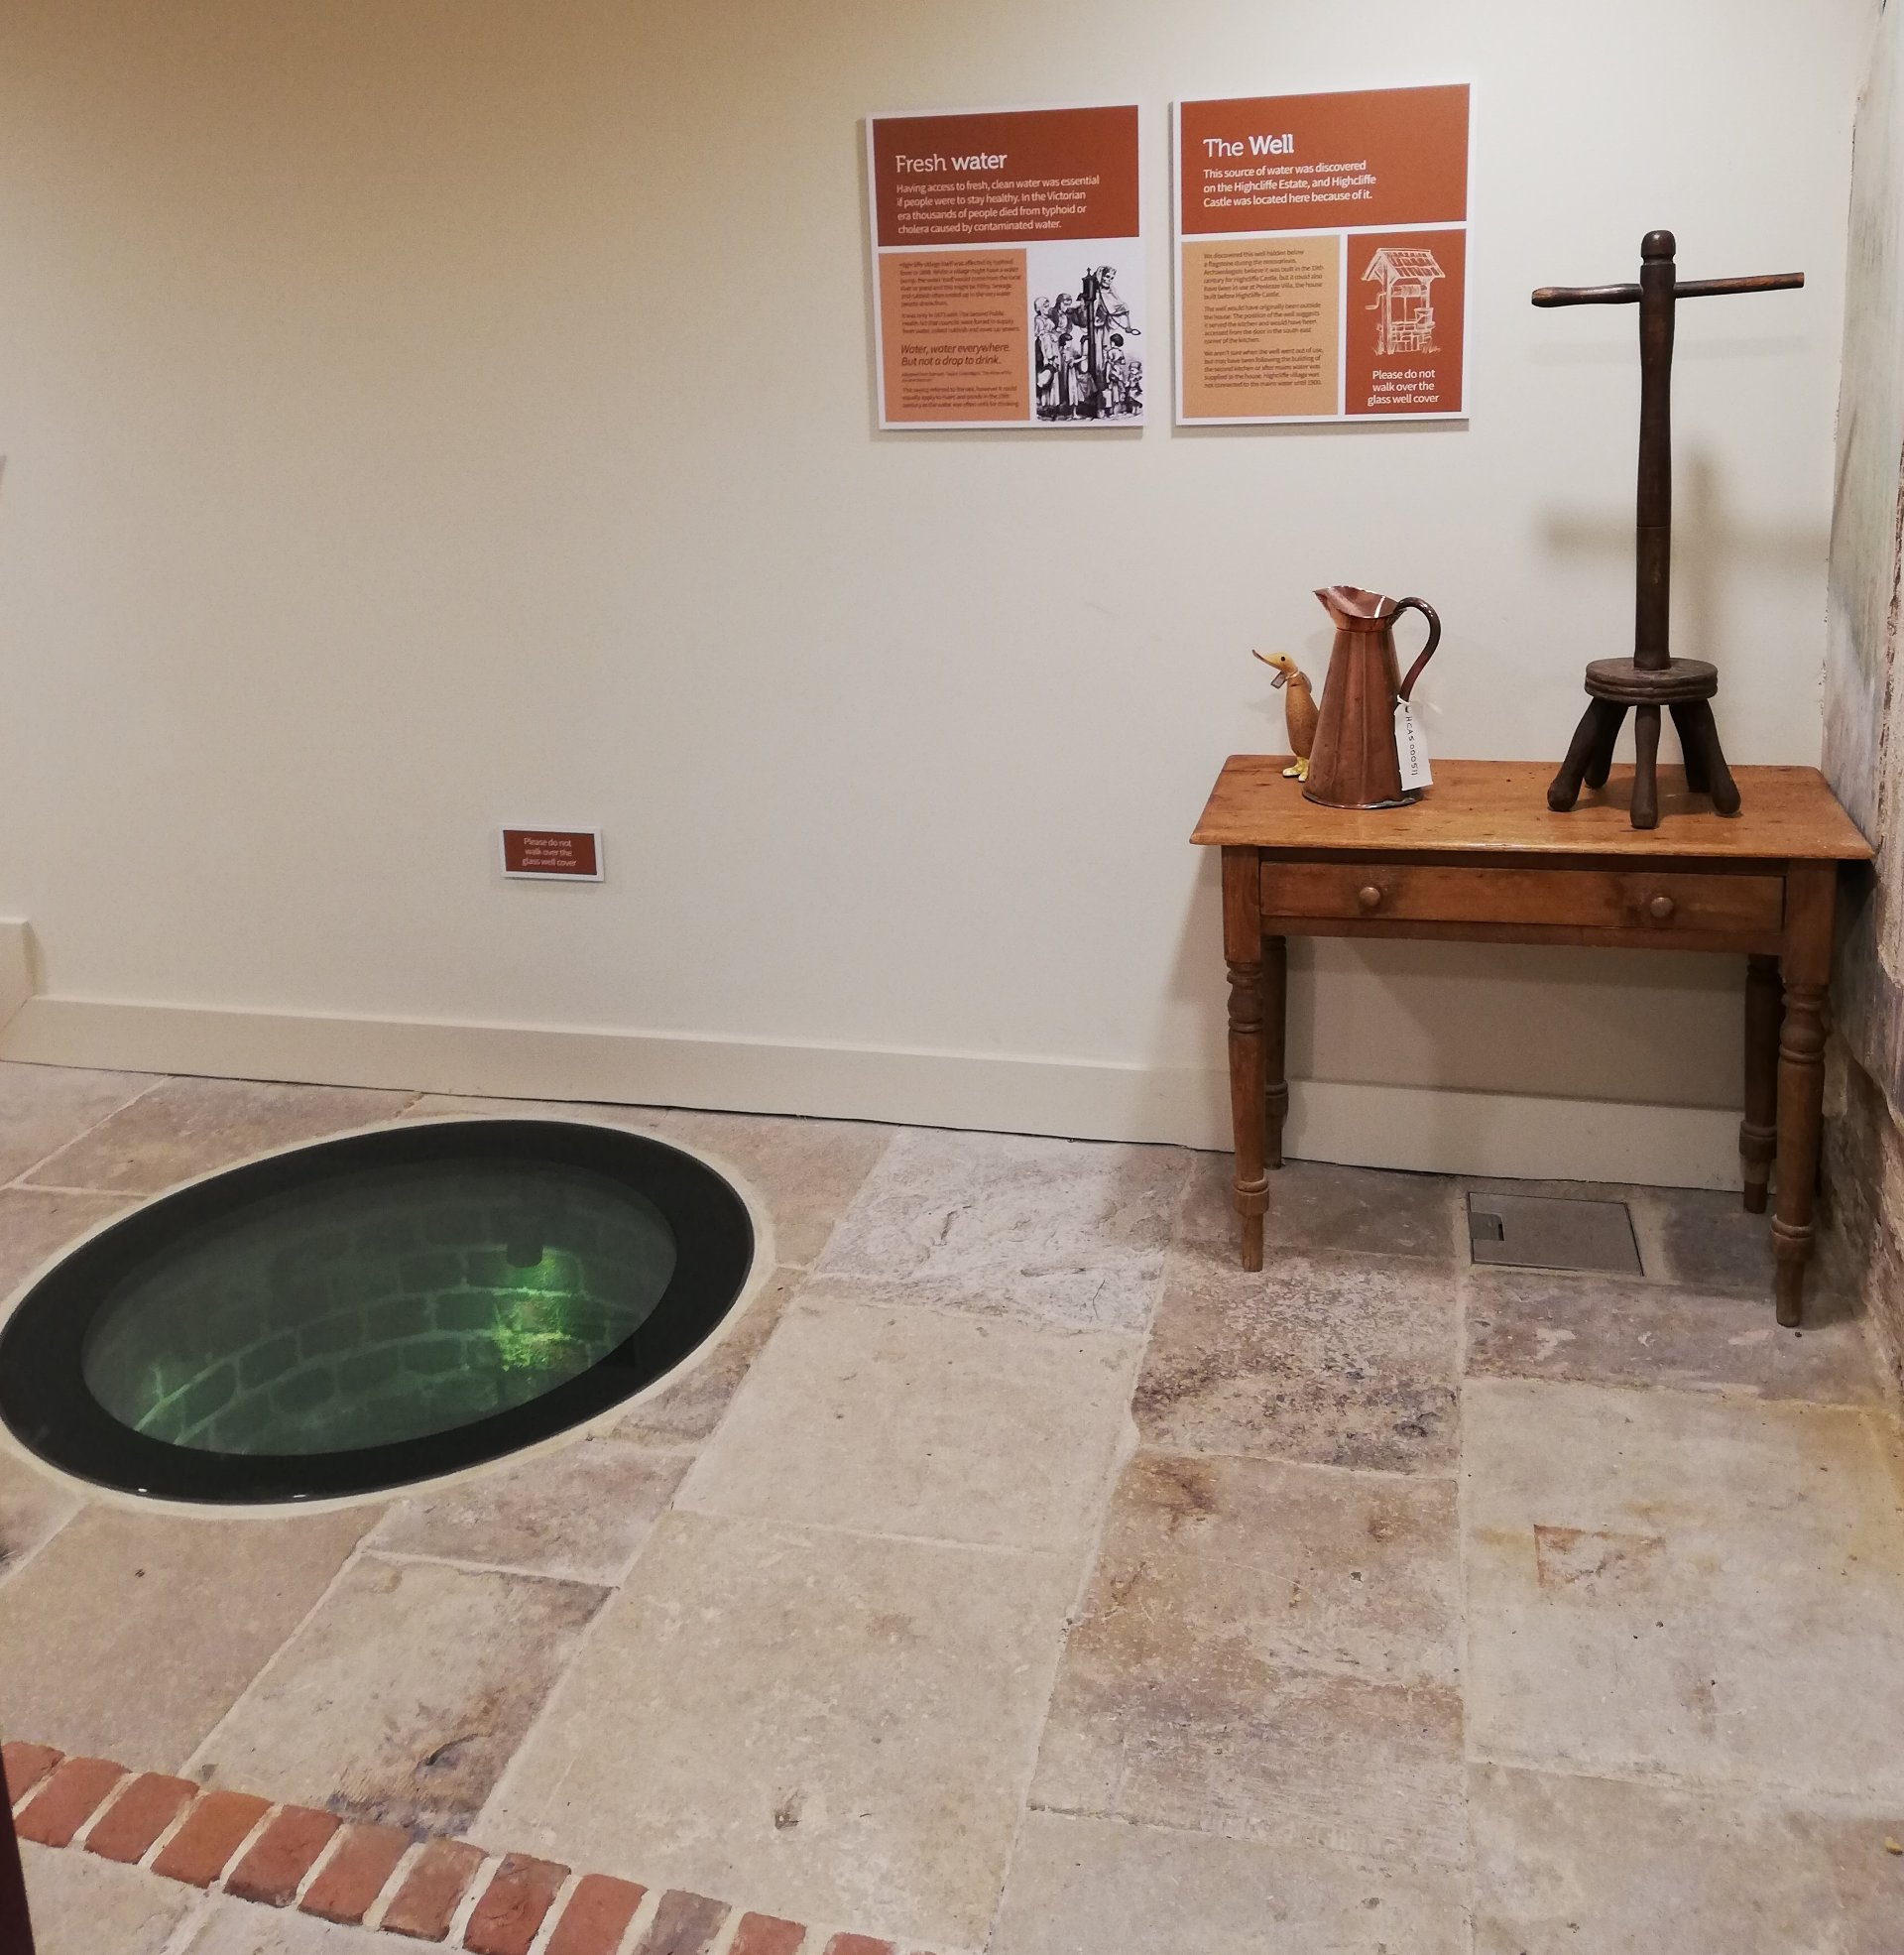 Spot the Duck - Beatrix hiding by the well, next to a copper water jug at Highcliffe Castle